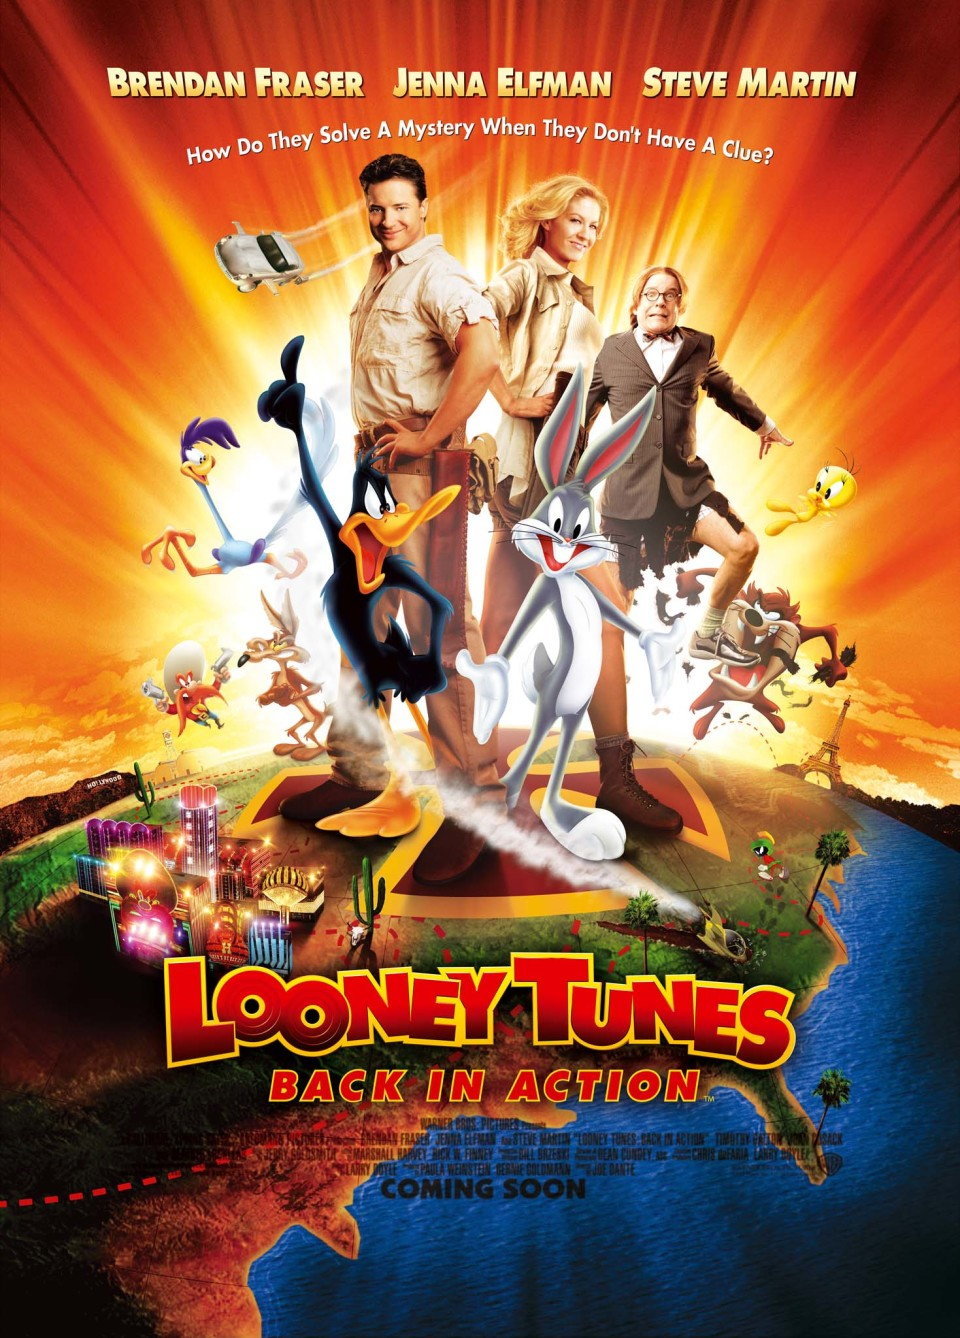 046-2003-Looney Tunes-International